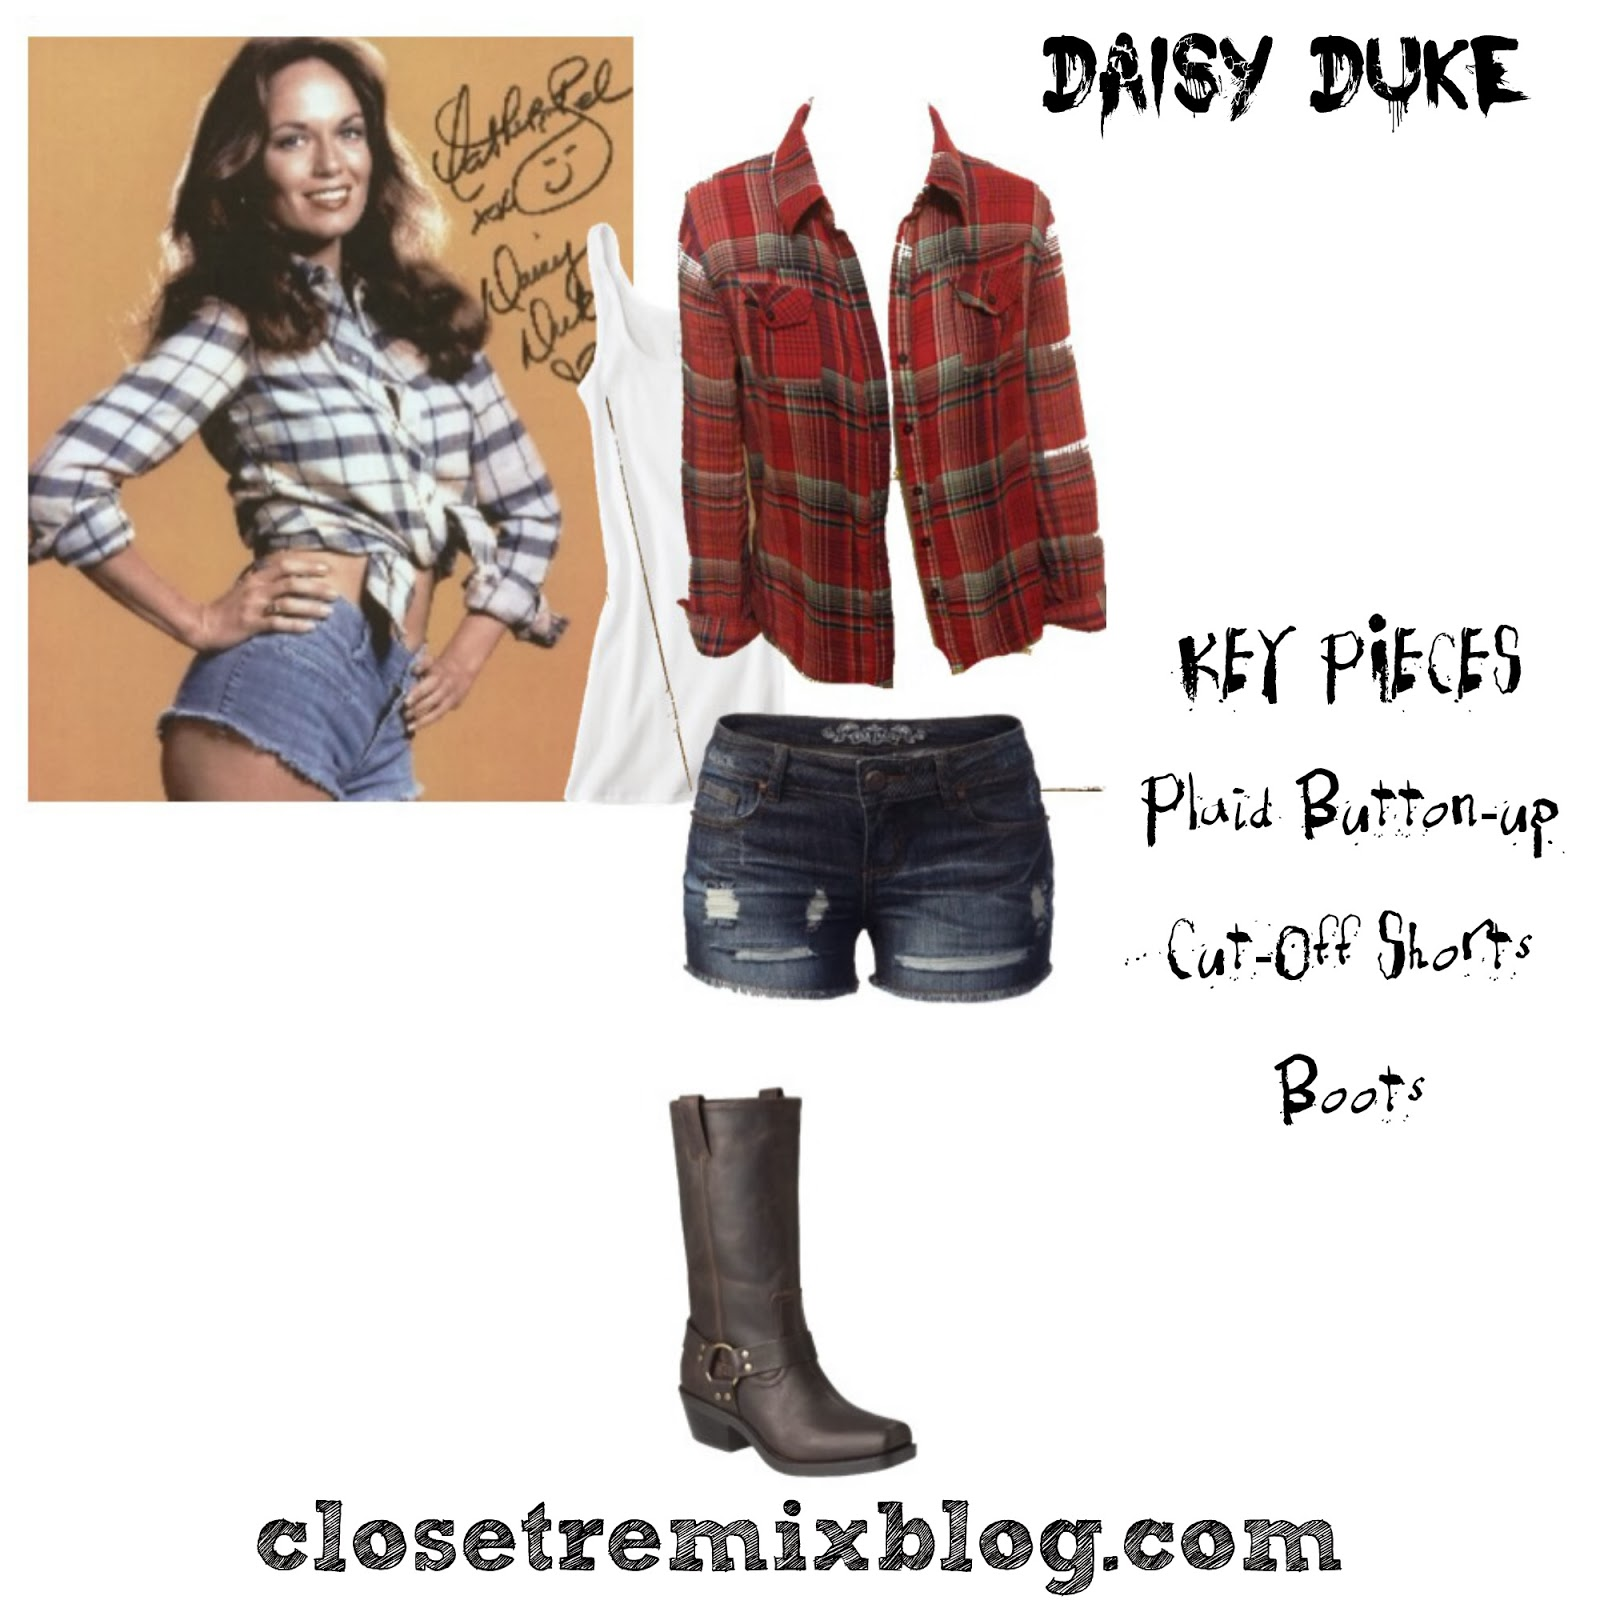 make daisy duke costume canada make daisy duke costume canada - Daisy Dukes Halloween Costume